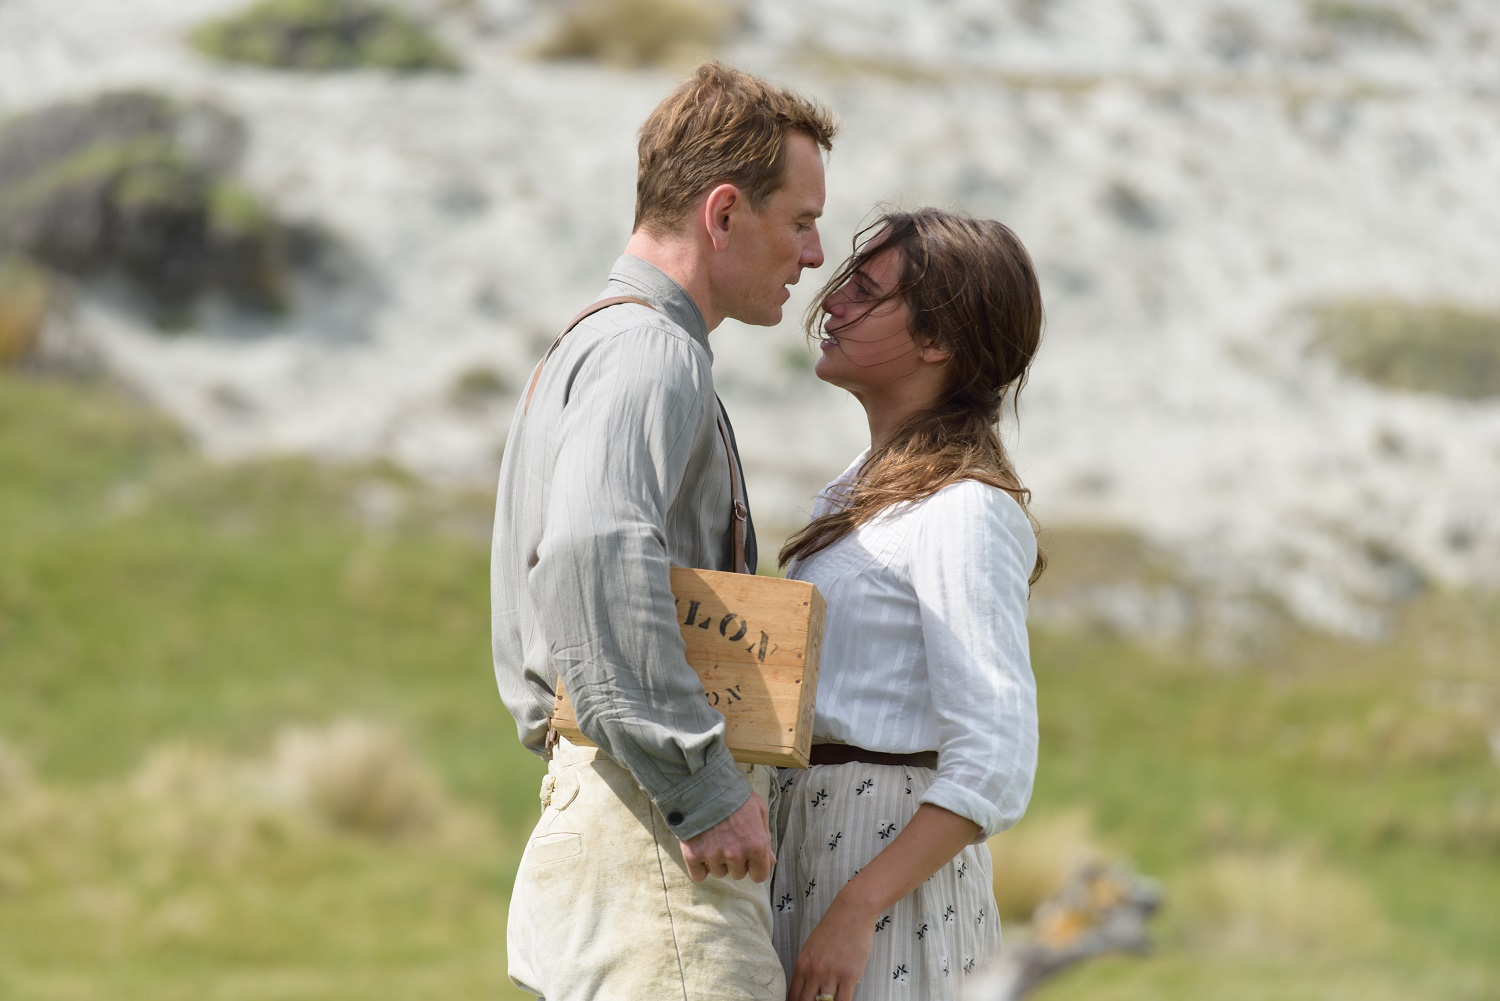 'The Light Between Oceans' movie review by Lucas Mirabella